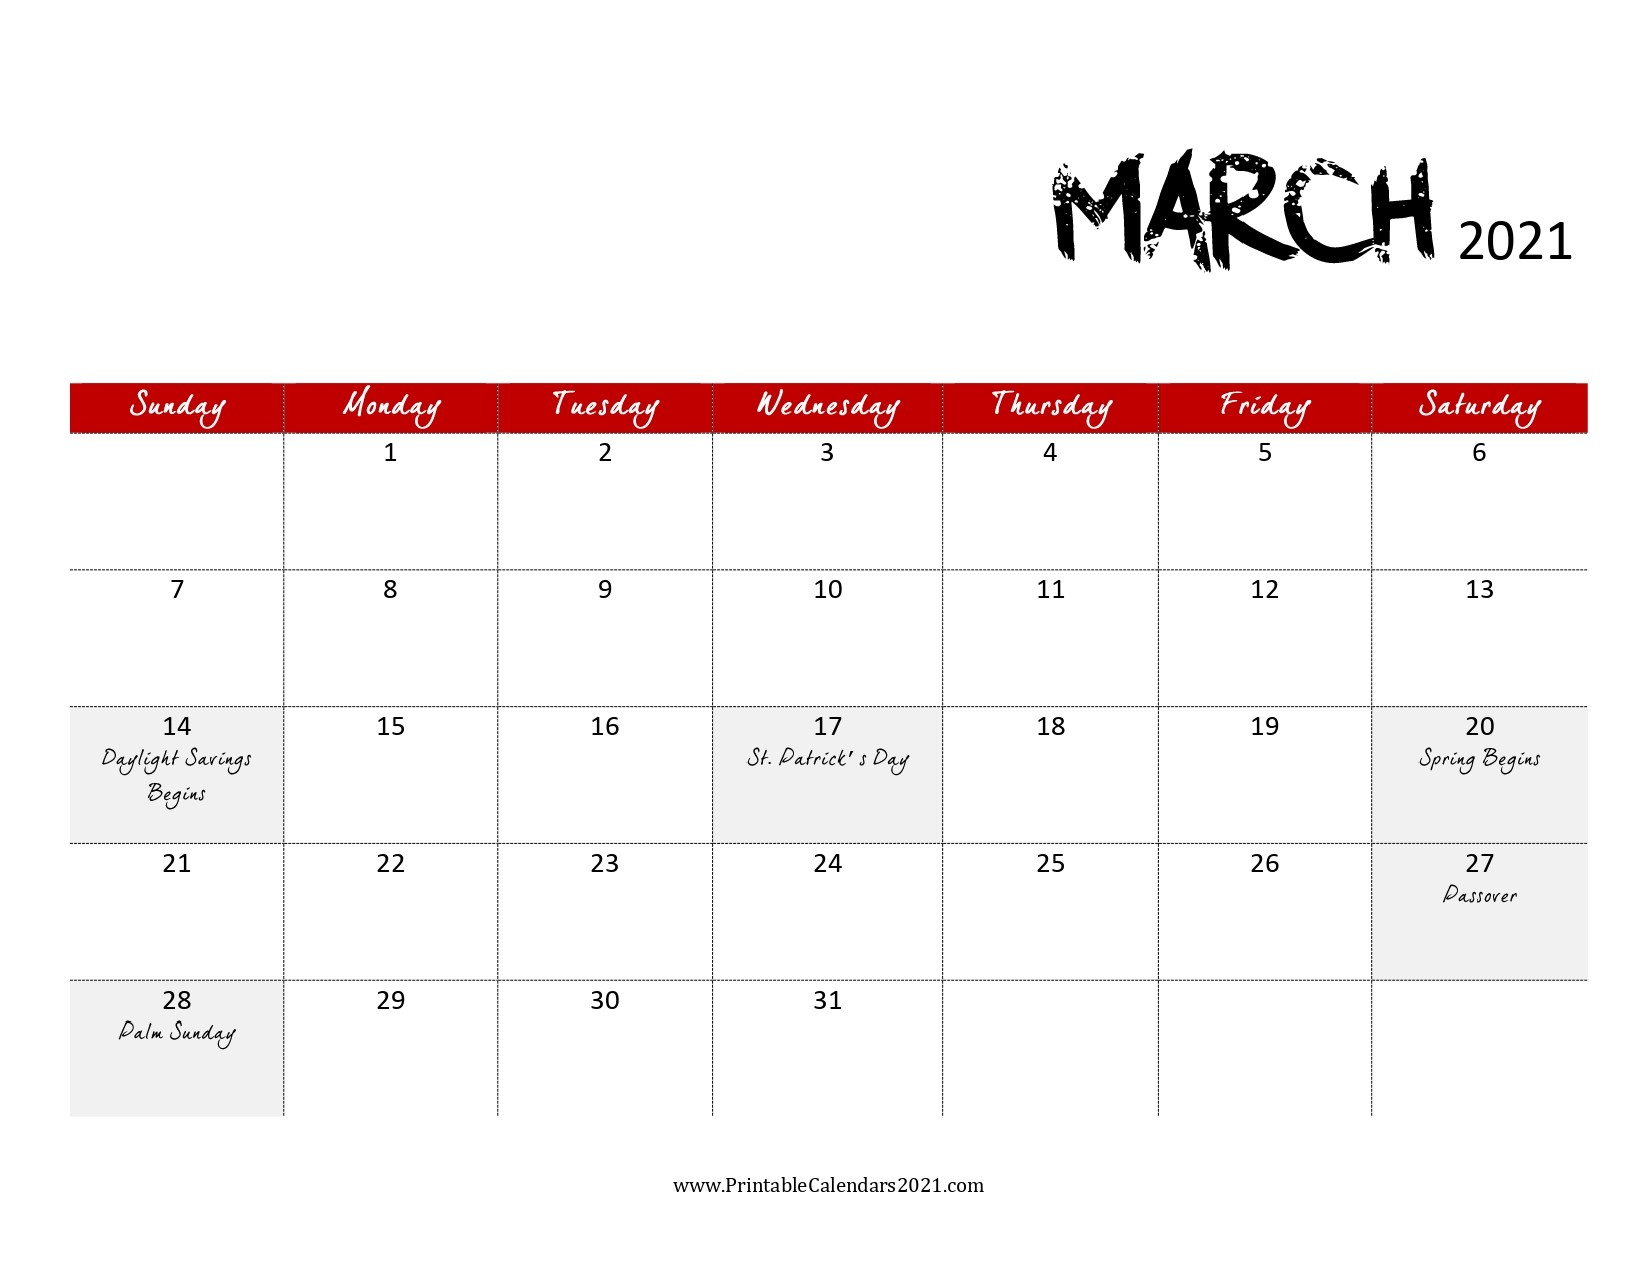 68 Free March 2021 Calendar Printable with Holidays